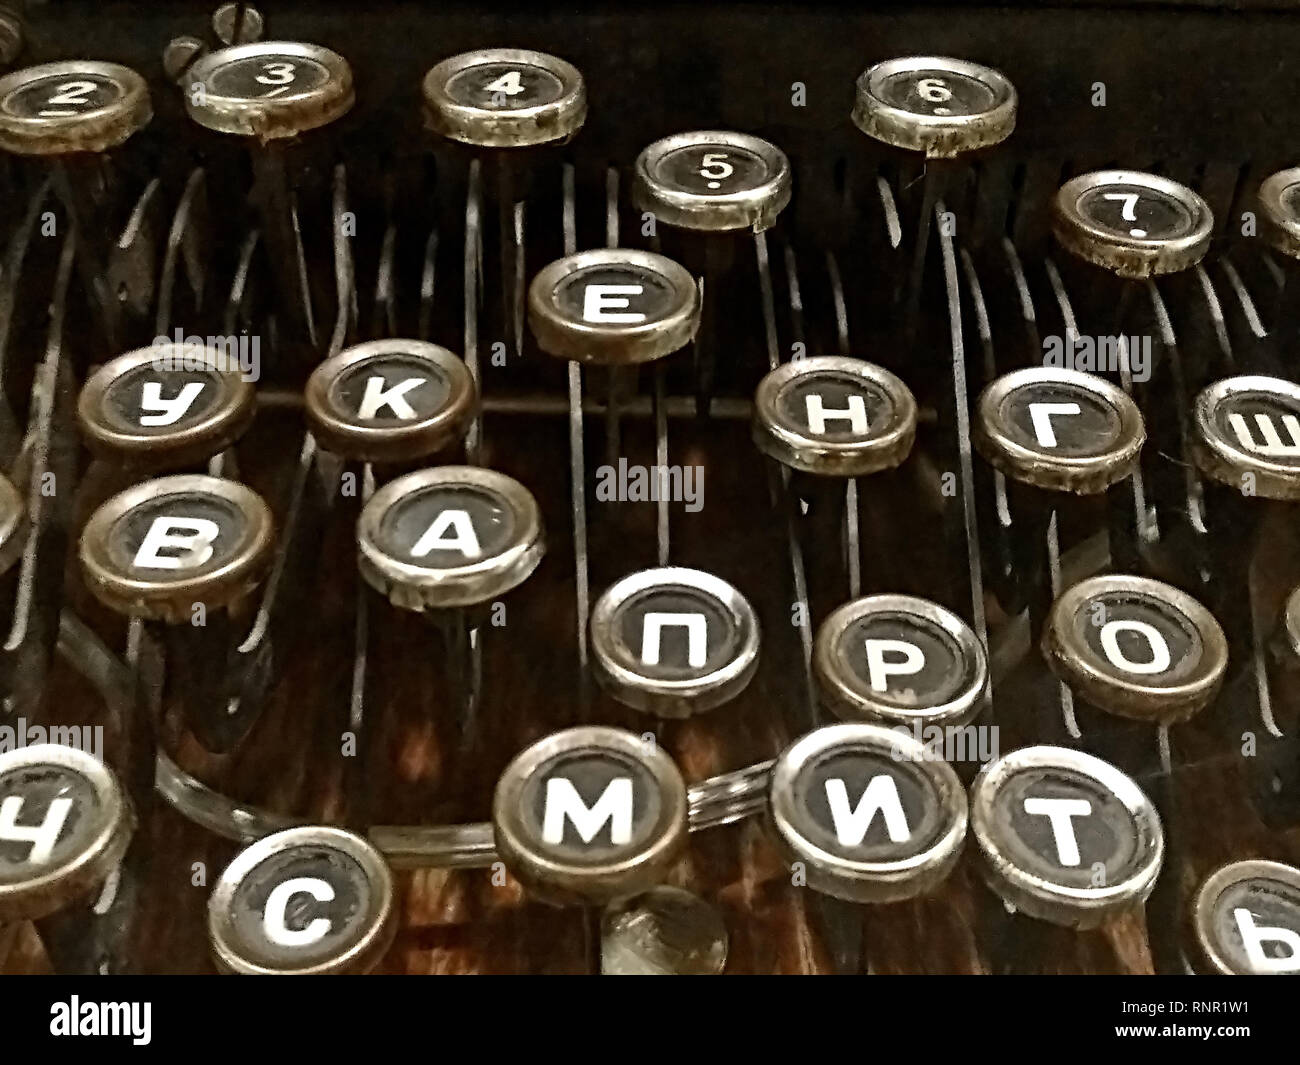 ac907a3ba80 Keyboard of an old vintage typewriter with cyrillic keys Stock Photo ...